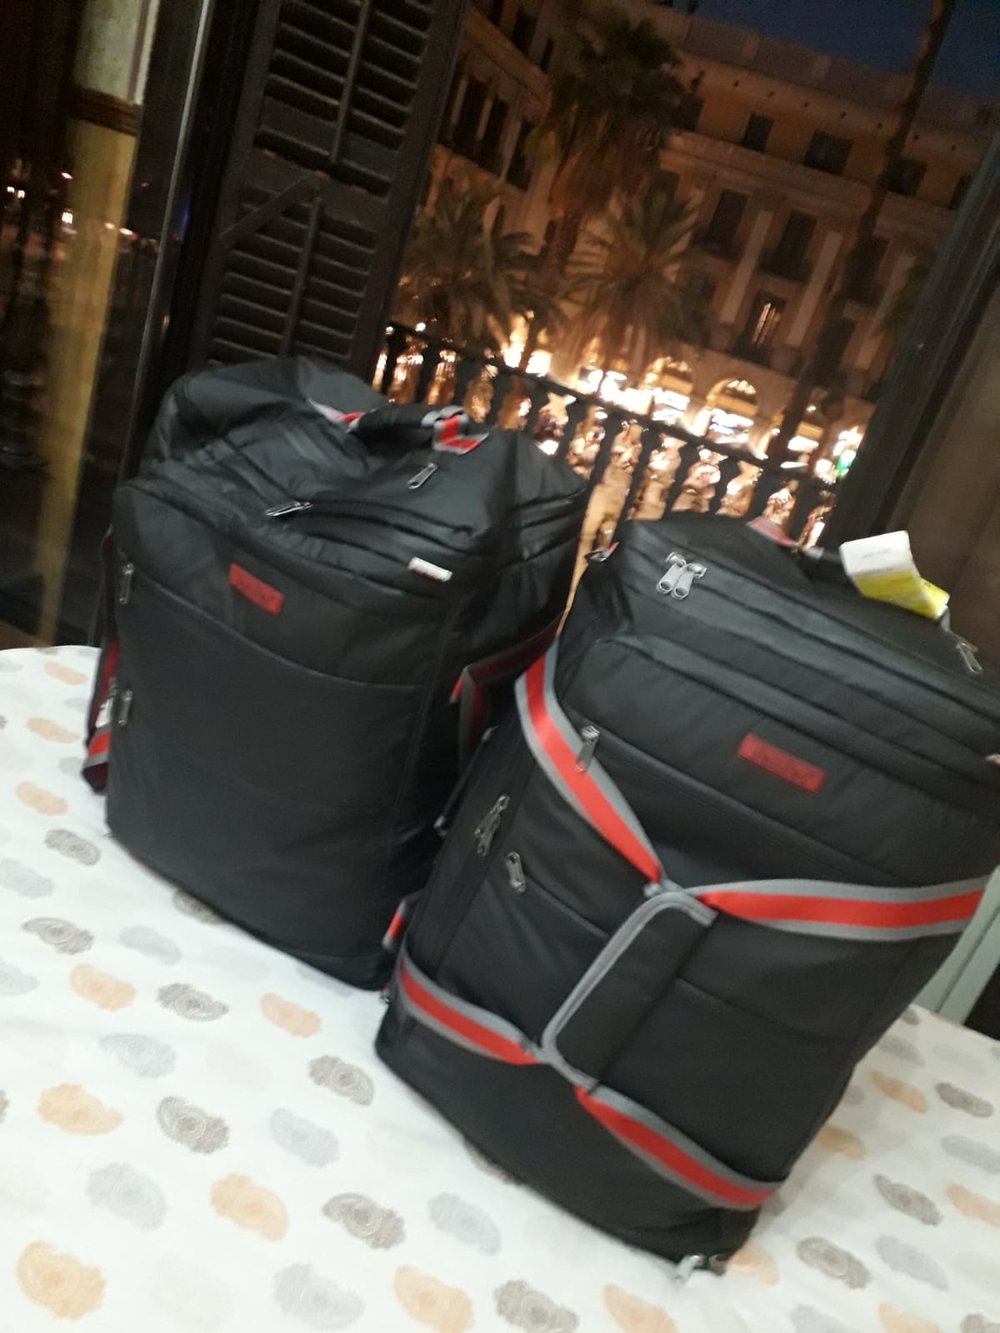 JamPac®s basking in Barcelona lights. No better occasion to bring along the JamPac® than a full-packed long weekend trip! Airline-friendly travel bag, fits within most airline luggage restrictions!